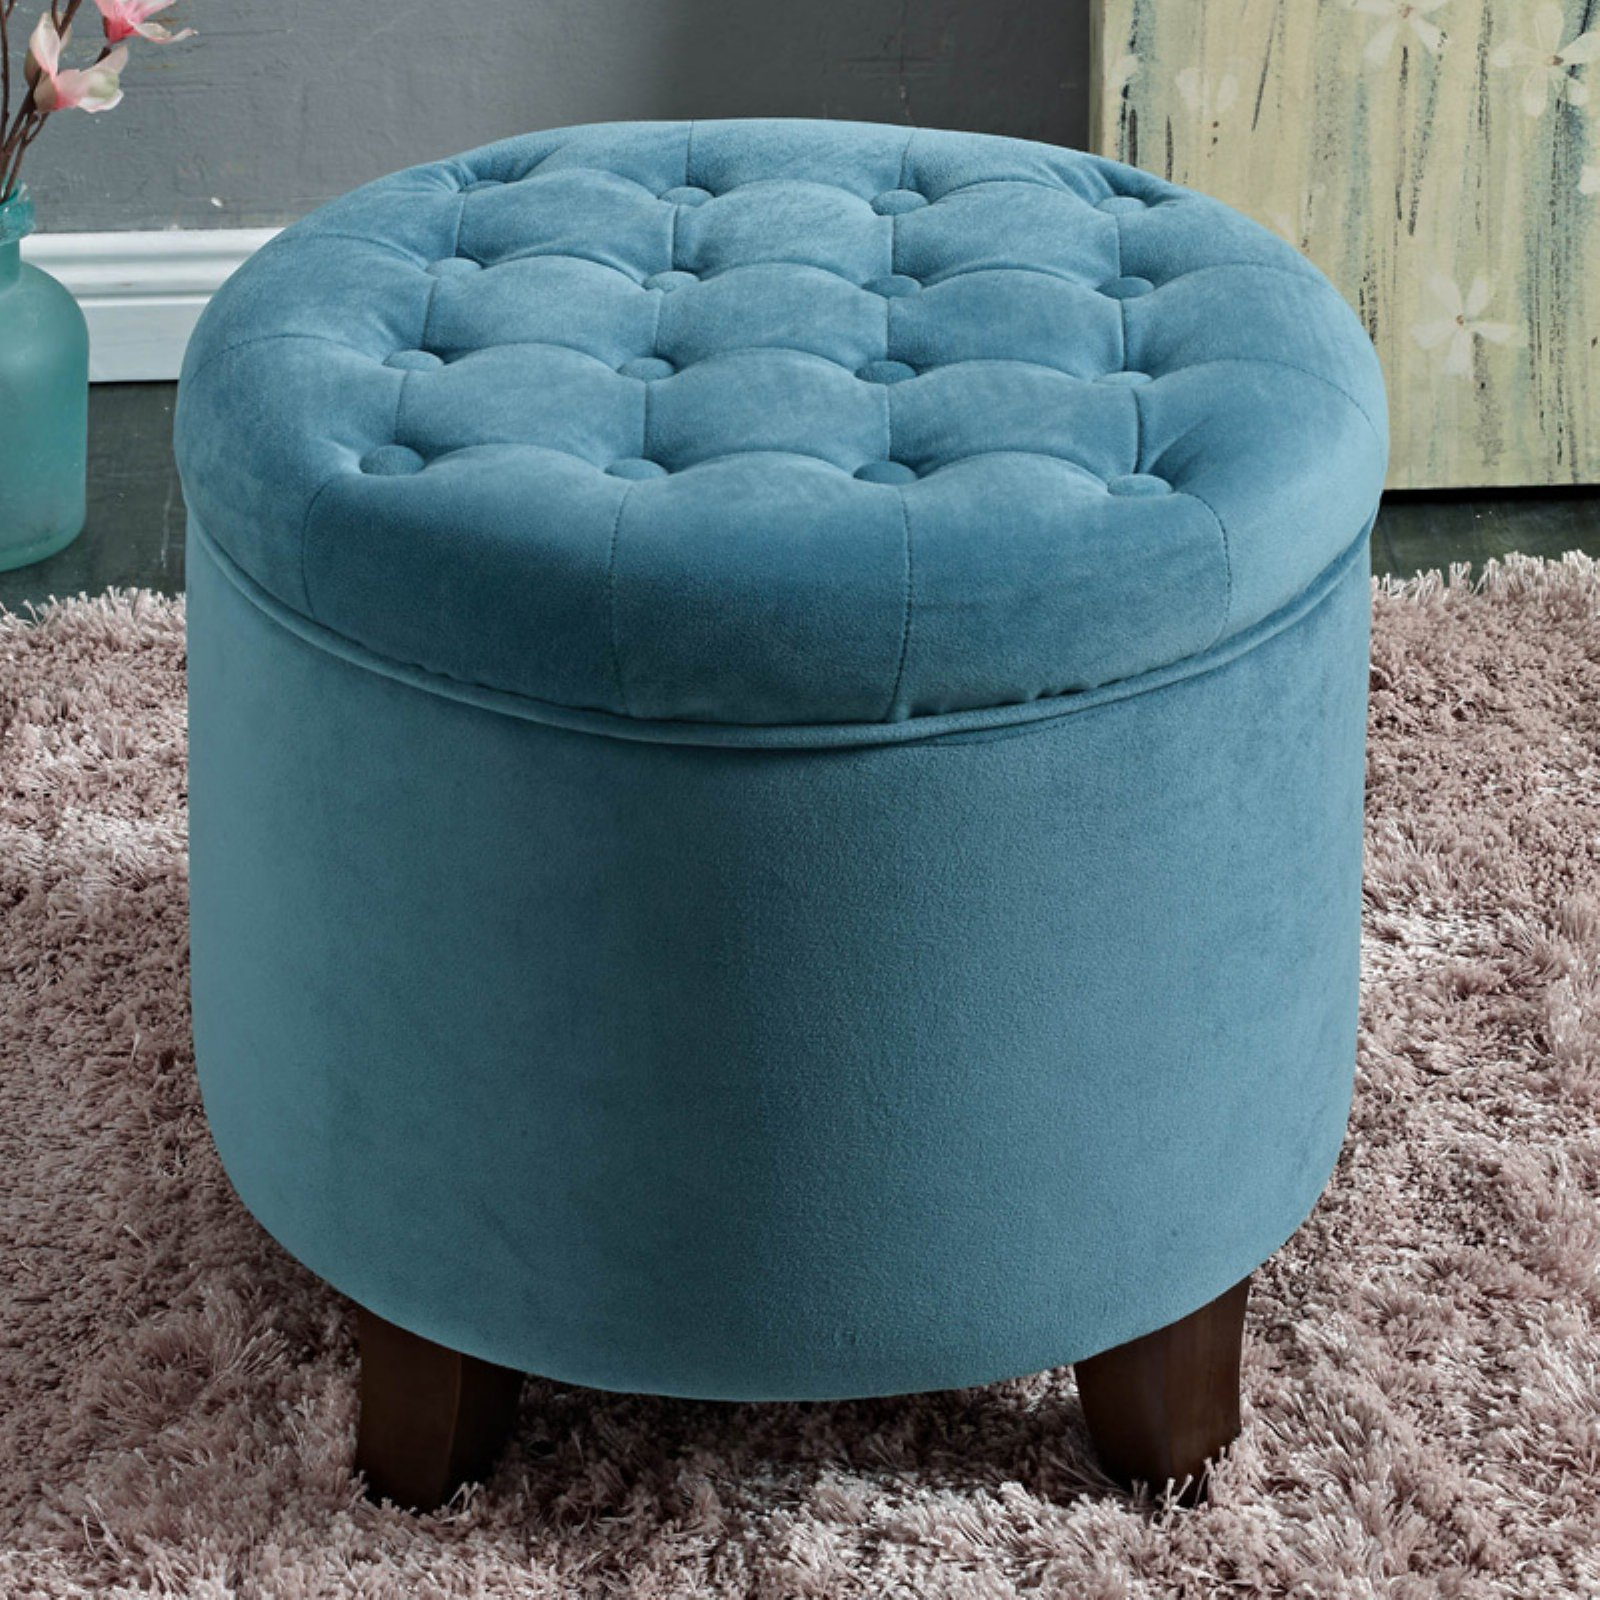 Fantastic Kinfine Usa Large Round Button Tufted Storage Ottoman Aqua Machost Co Dining Chair Design Ideas Machostcouk